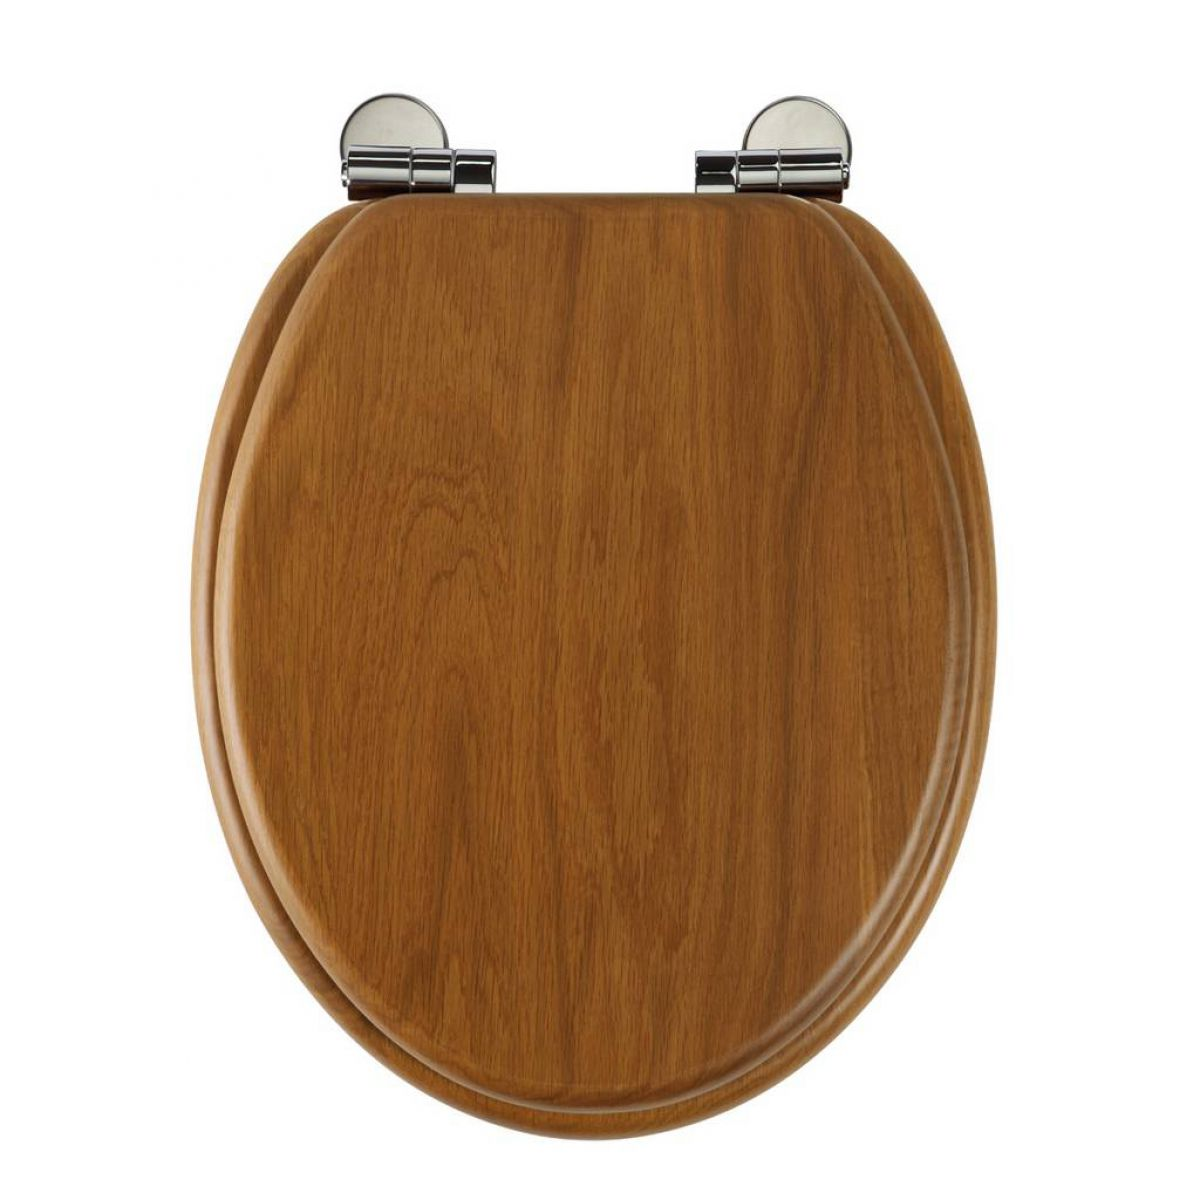 Roper Rhodes Traditional Soft Close Toilet Seat UK Bathrooms